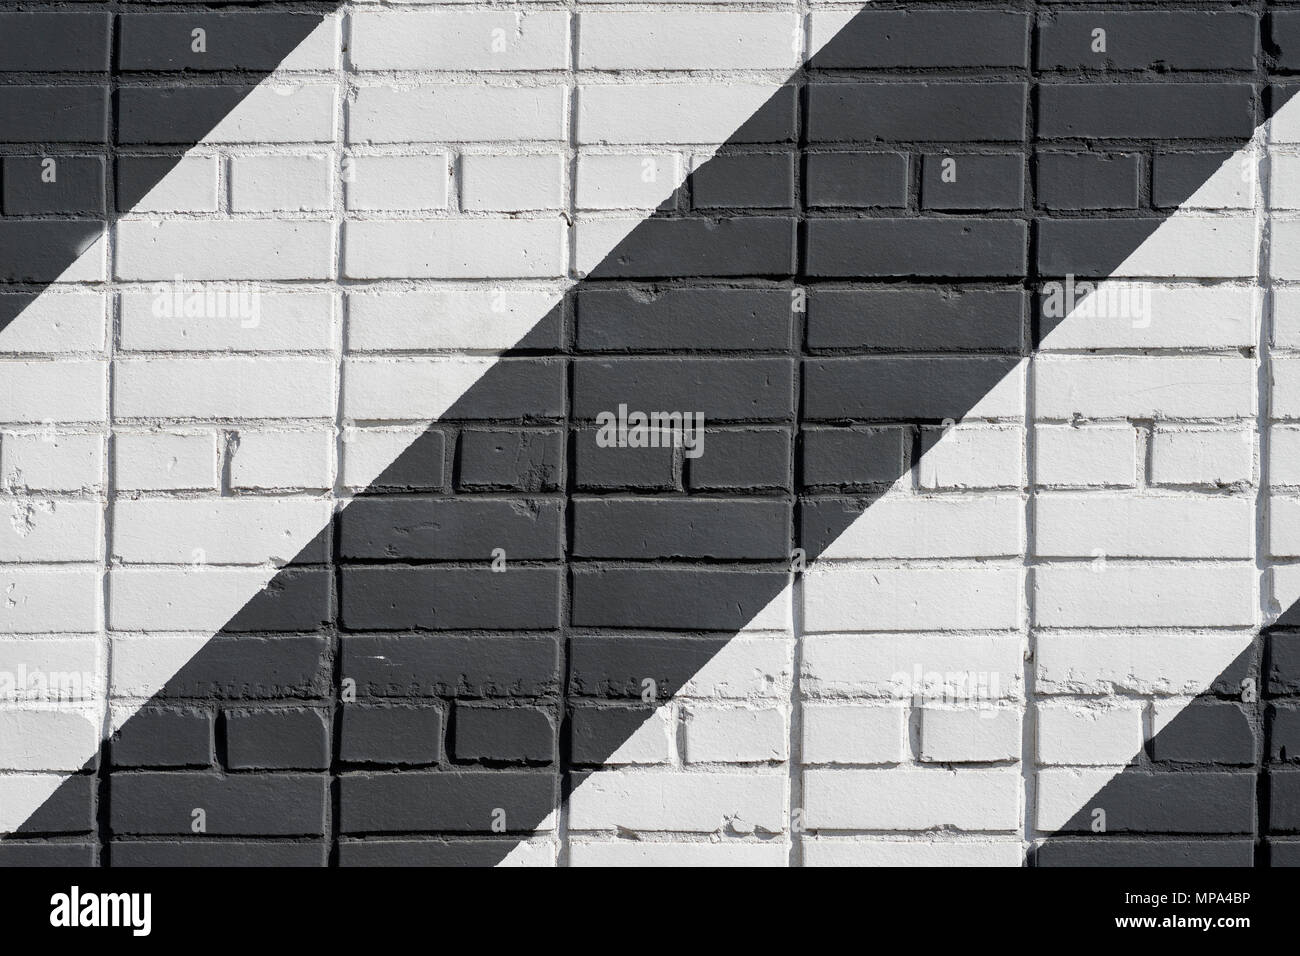 Painted diagonally bricks surface of wall in black and white color, as graffiti. Graphic grunge texture of wall. Abstract modern background - Stock Image